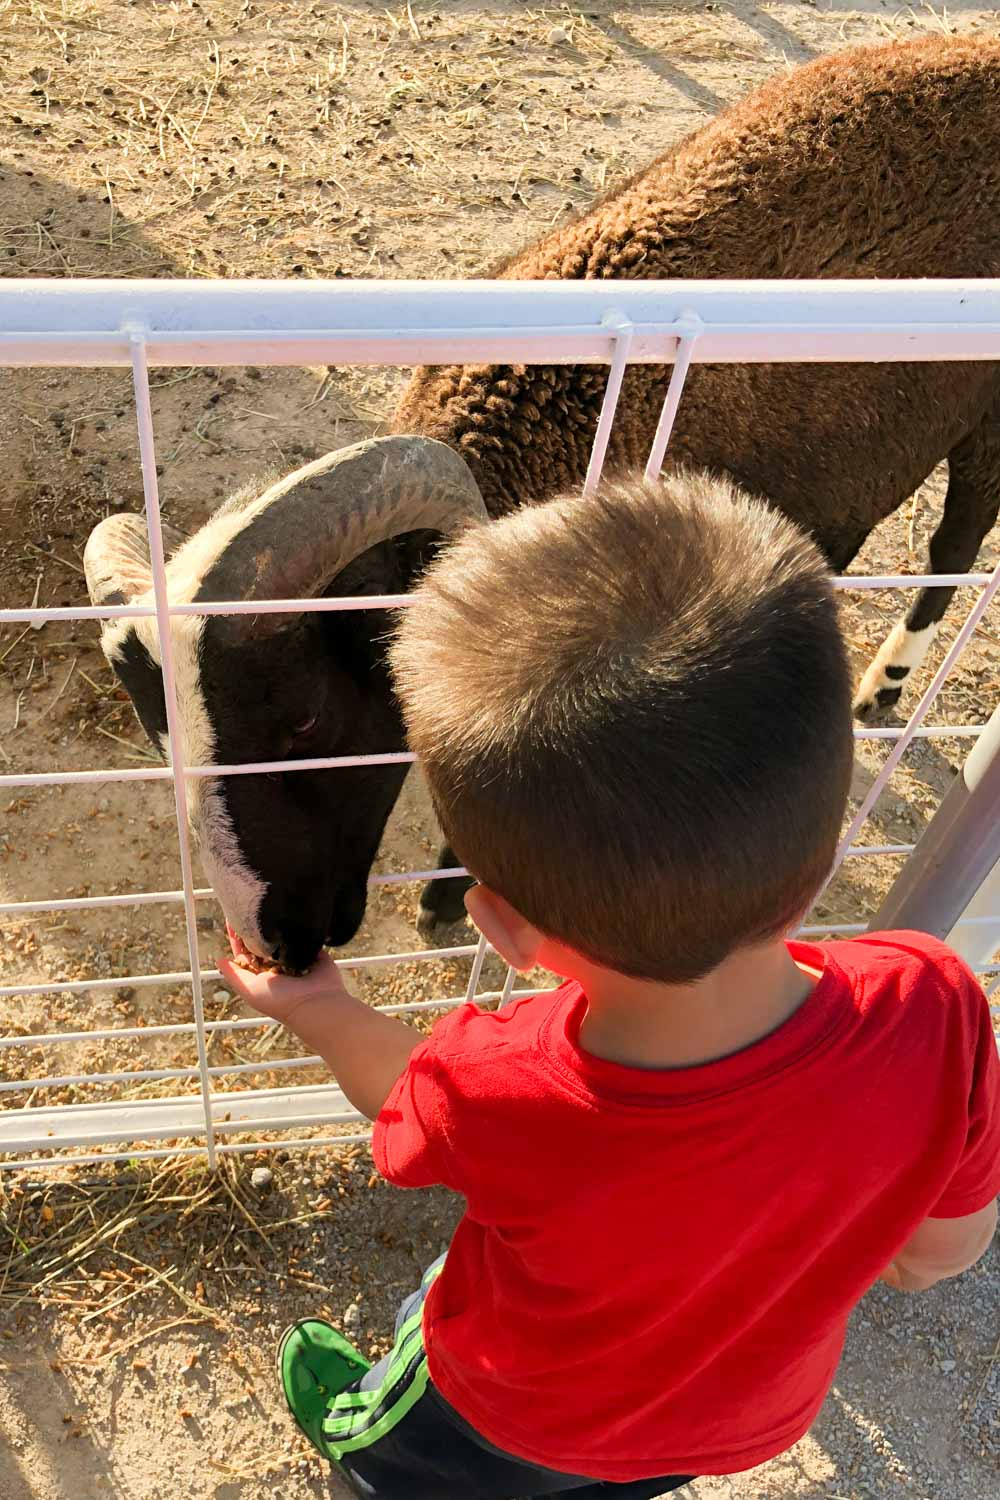 faulkner's pumpkin ranch - feed animals